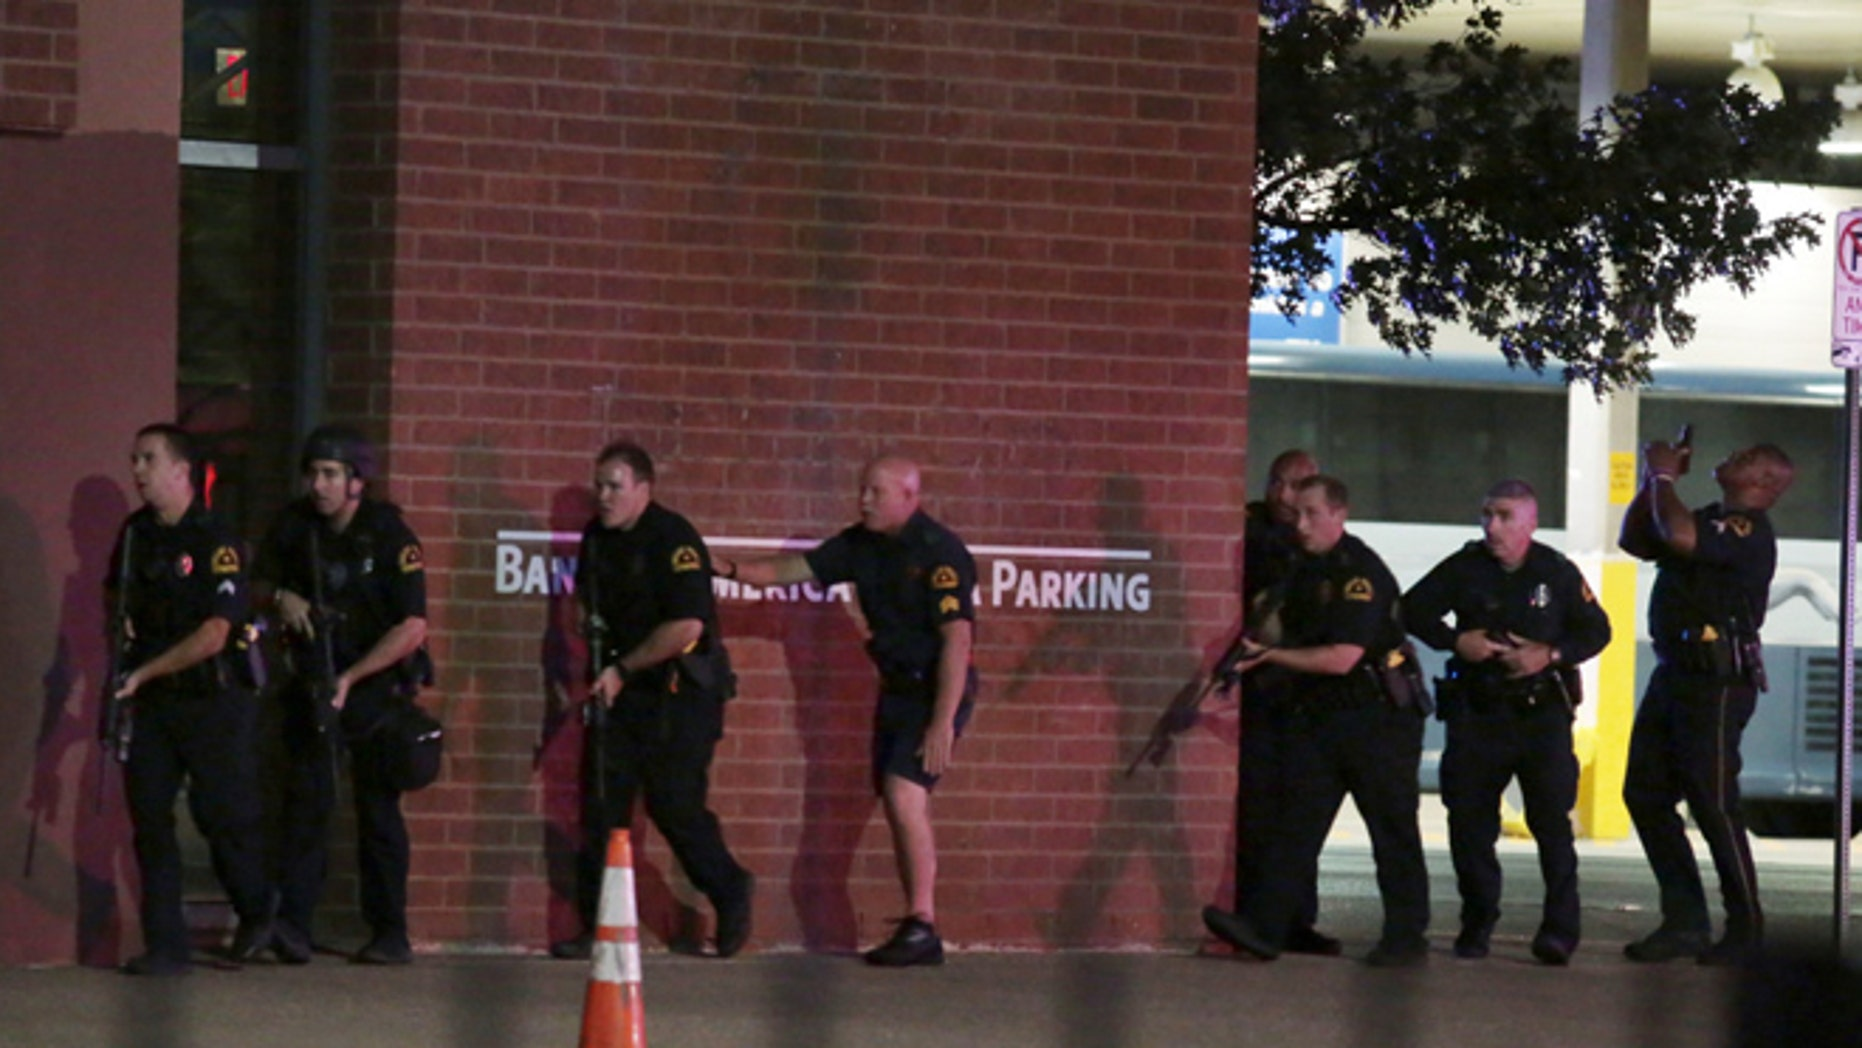 The sniper is believed to have fired from a downtown parking garage.